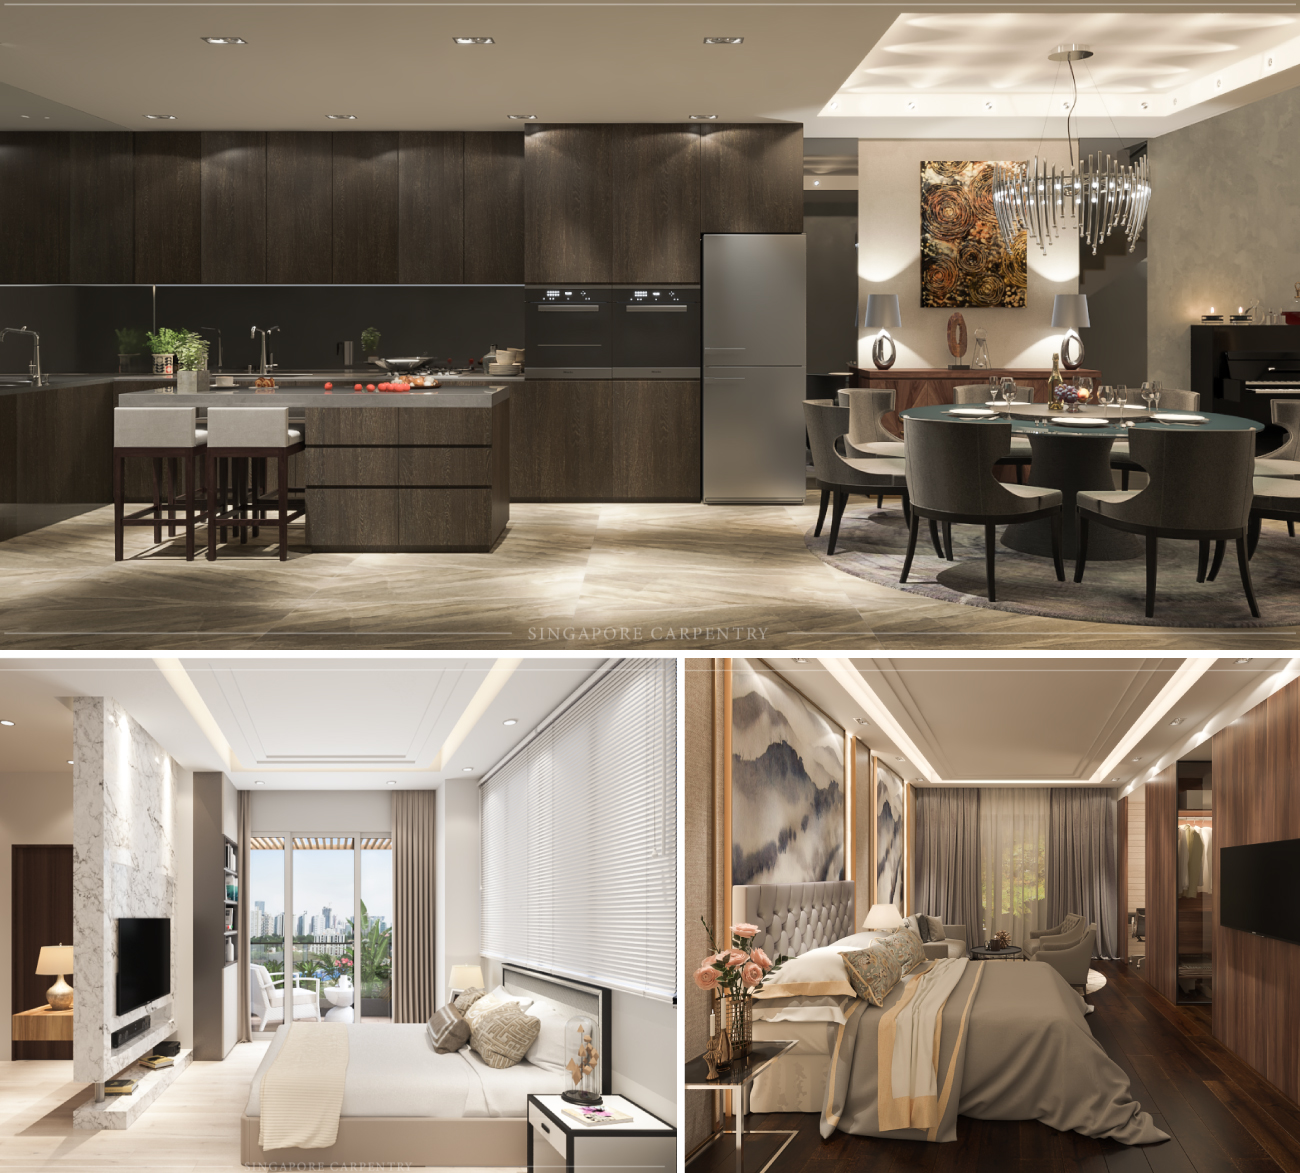 Modern Oriental Design Bedrooms, Kitchen and Dining area interior design at Kew Cresent